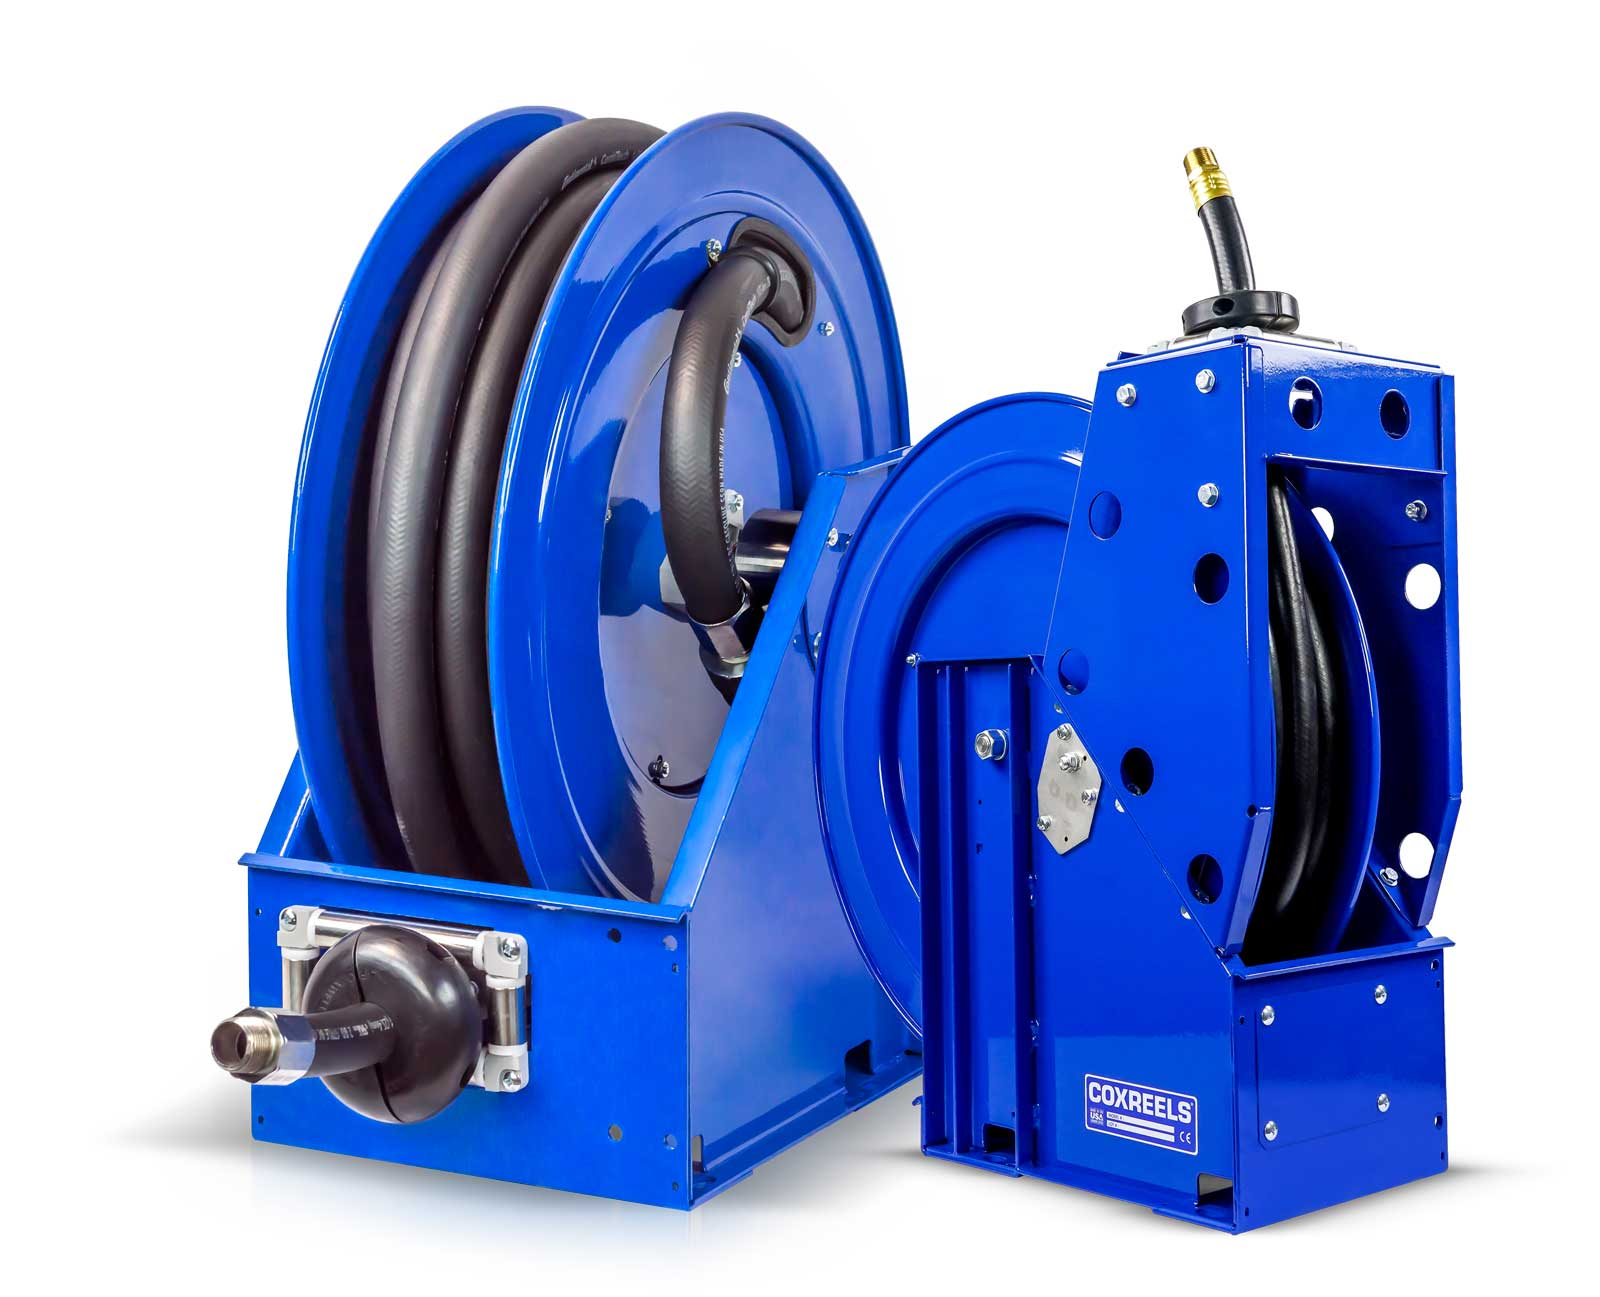 XTM Series from Coxreels